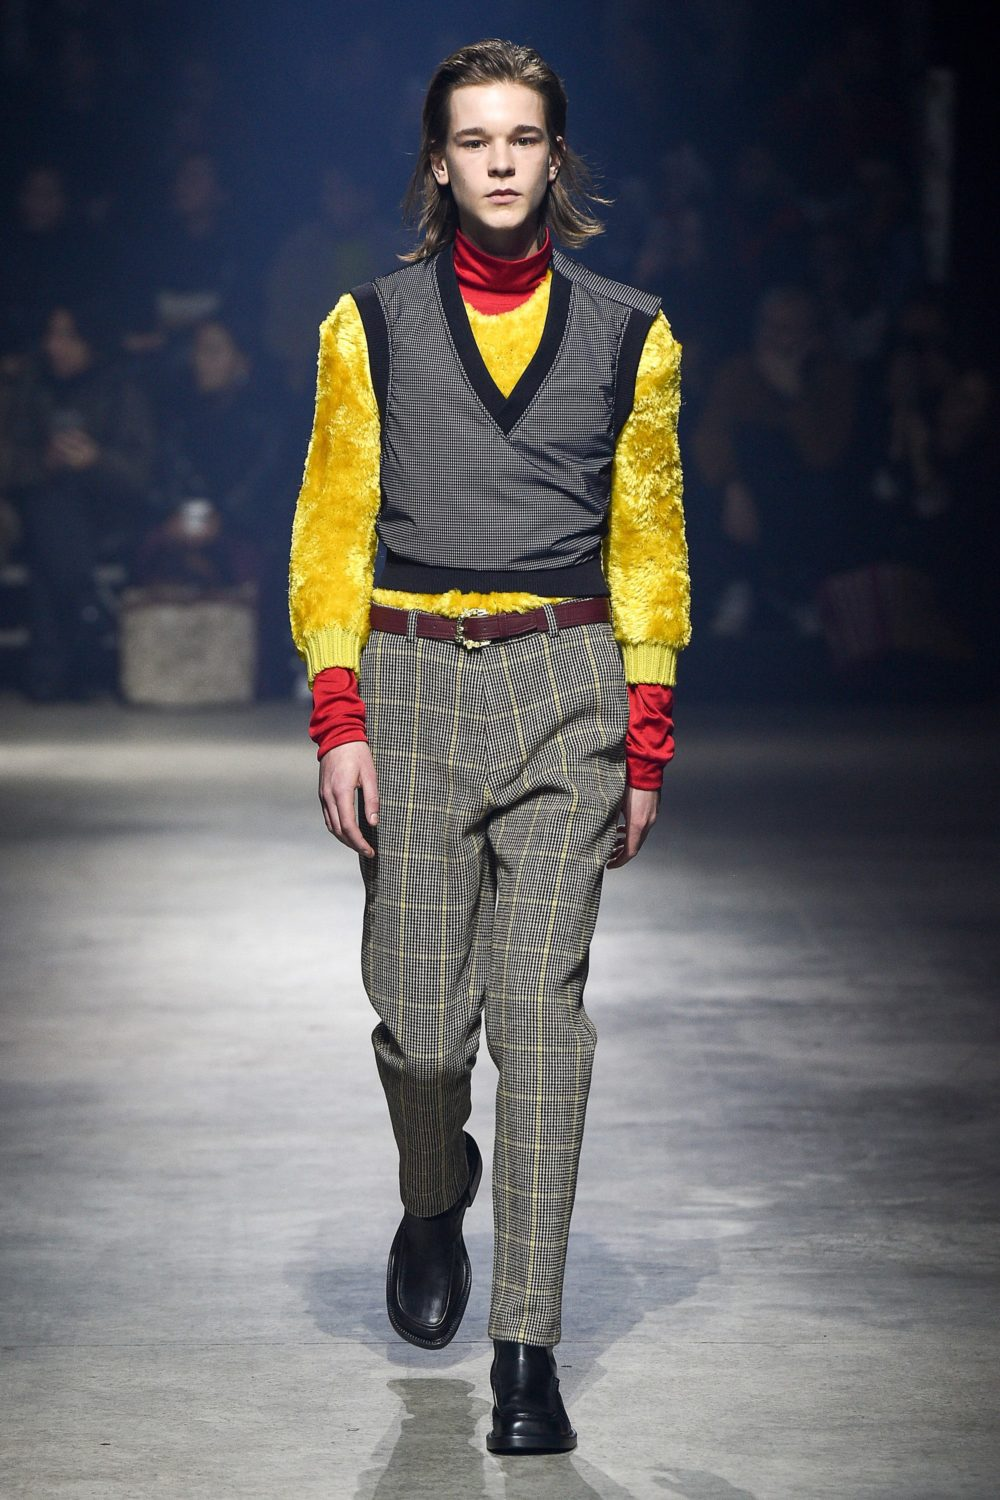 2cff116fd2 Even his successors, Leon and Kim, owe a substantial debt to the man whose  vibrancy and eclecticism changed the way the youth perceived high fashion.